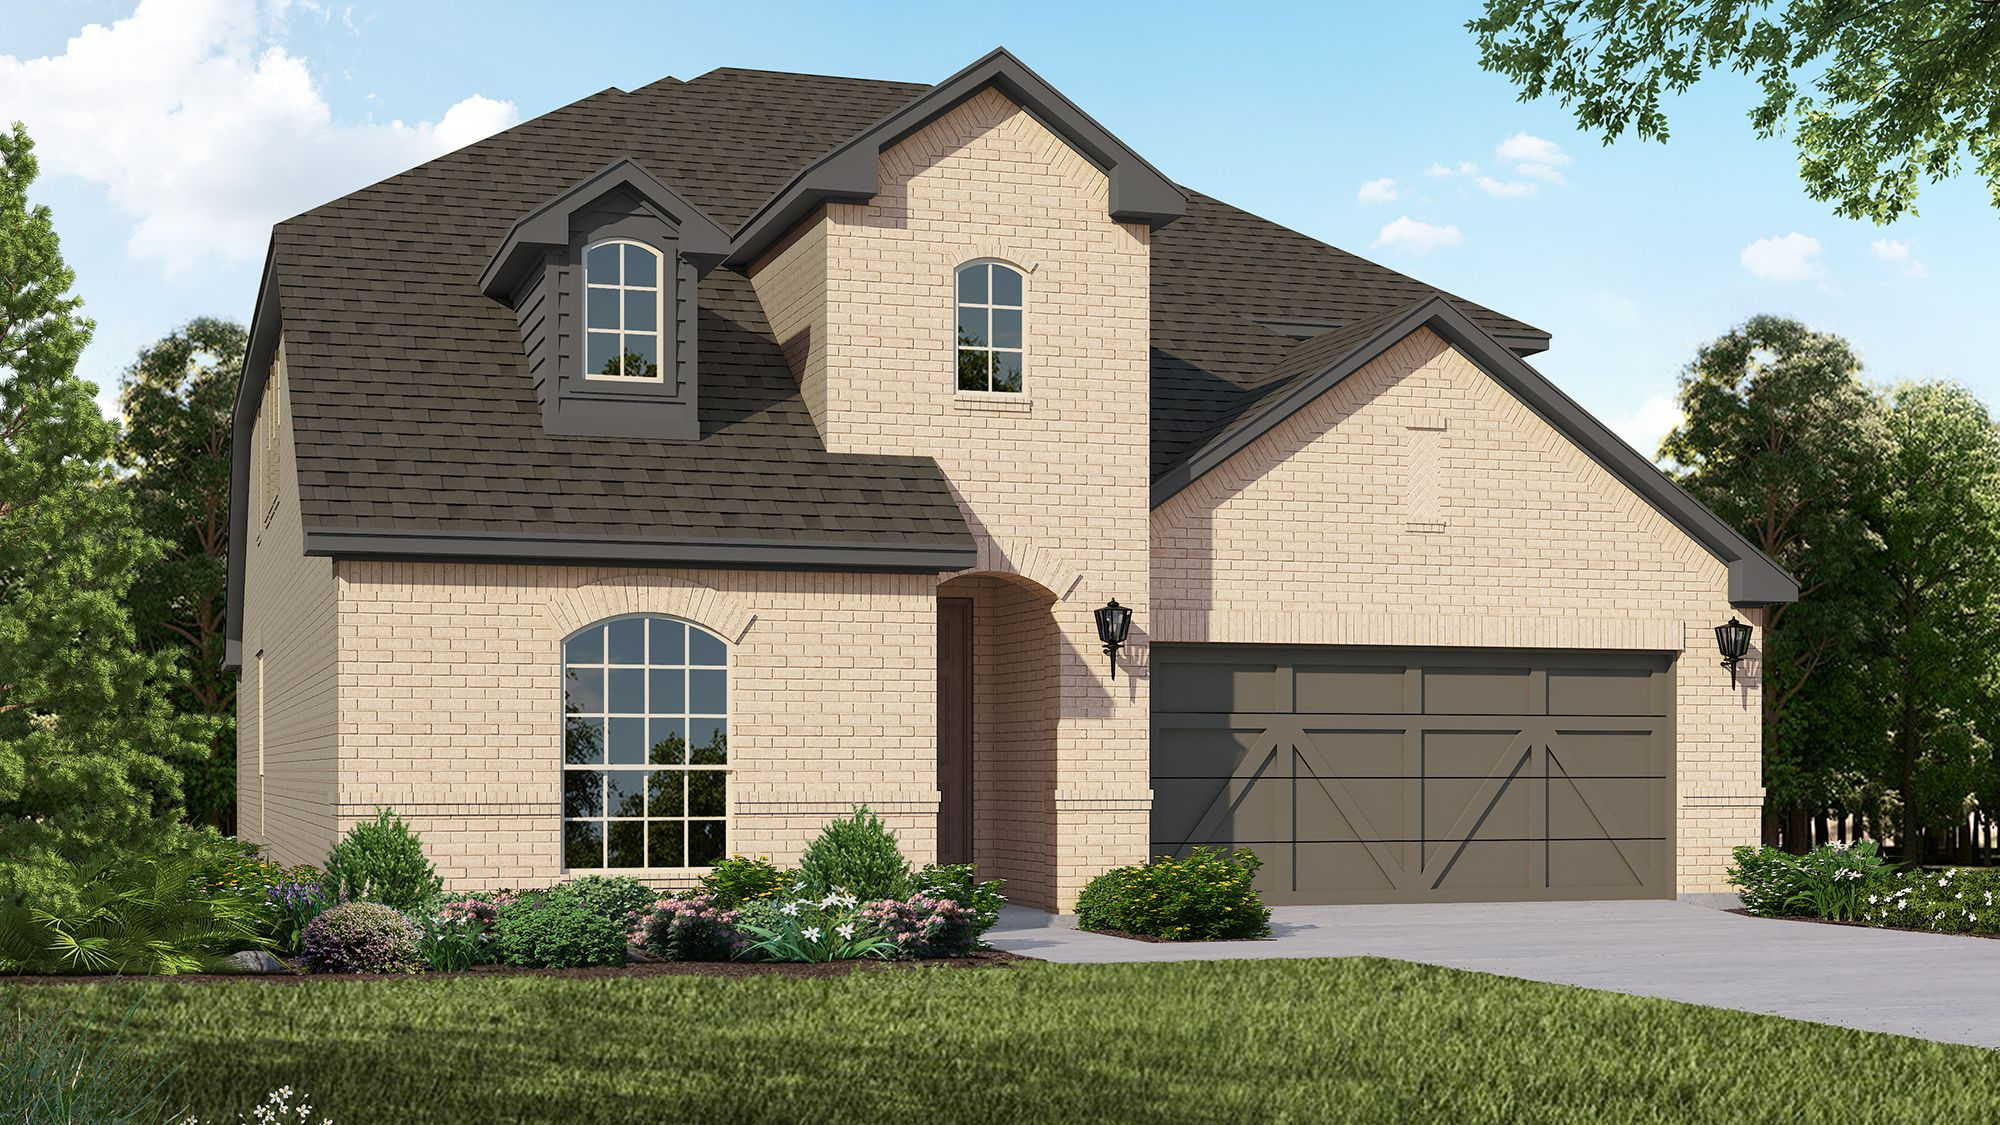 Plan 1528 Elevation A by American Legend Homes